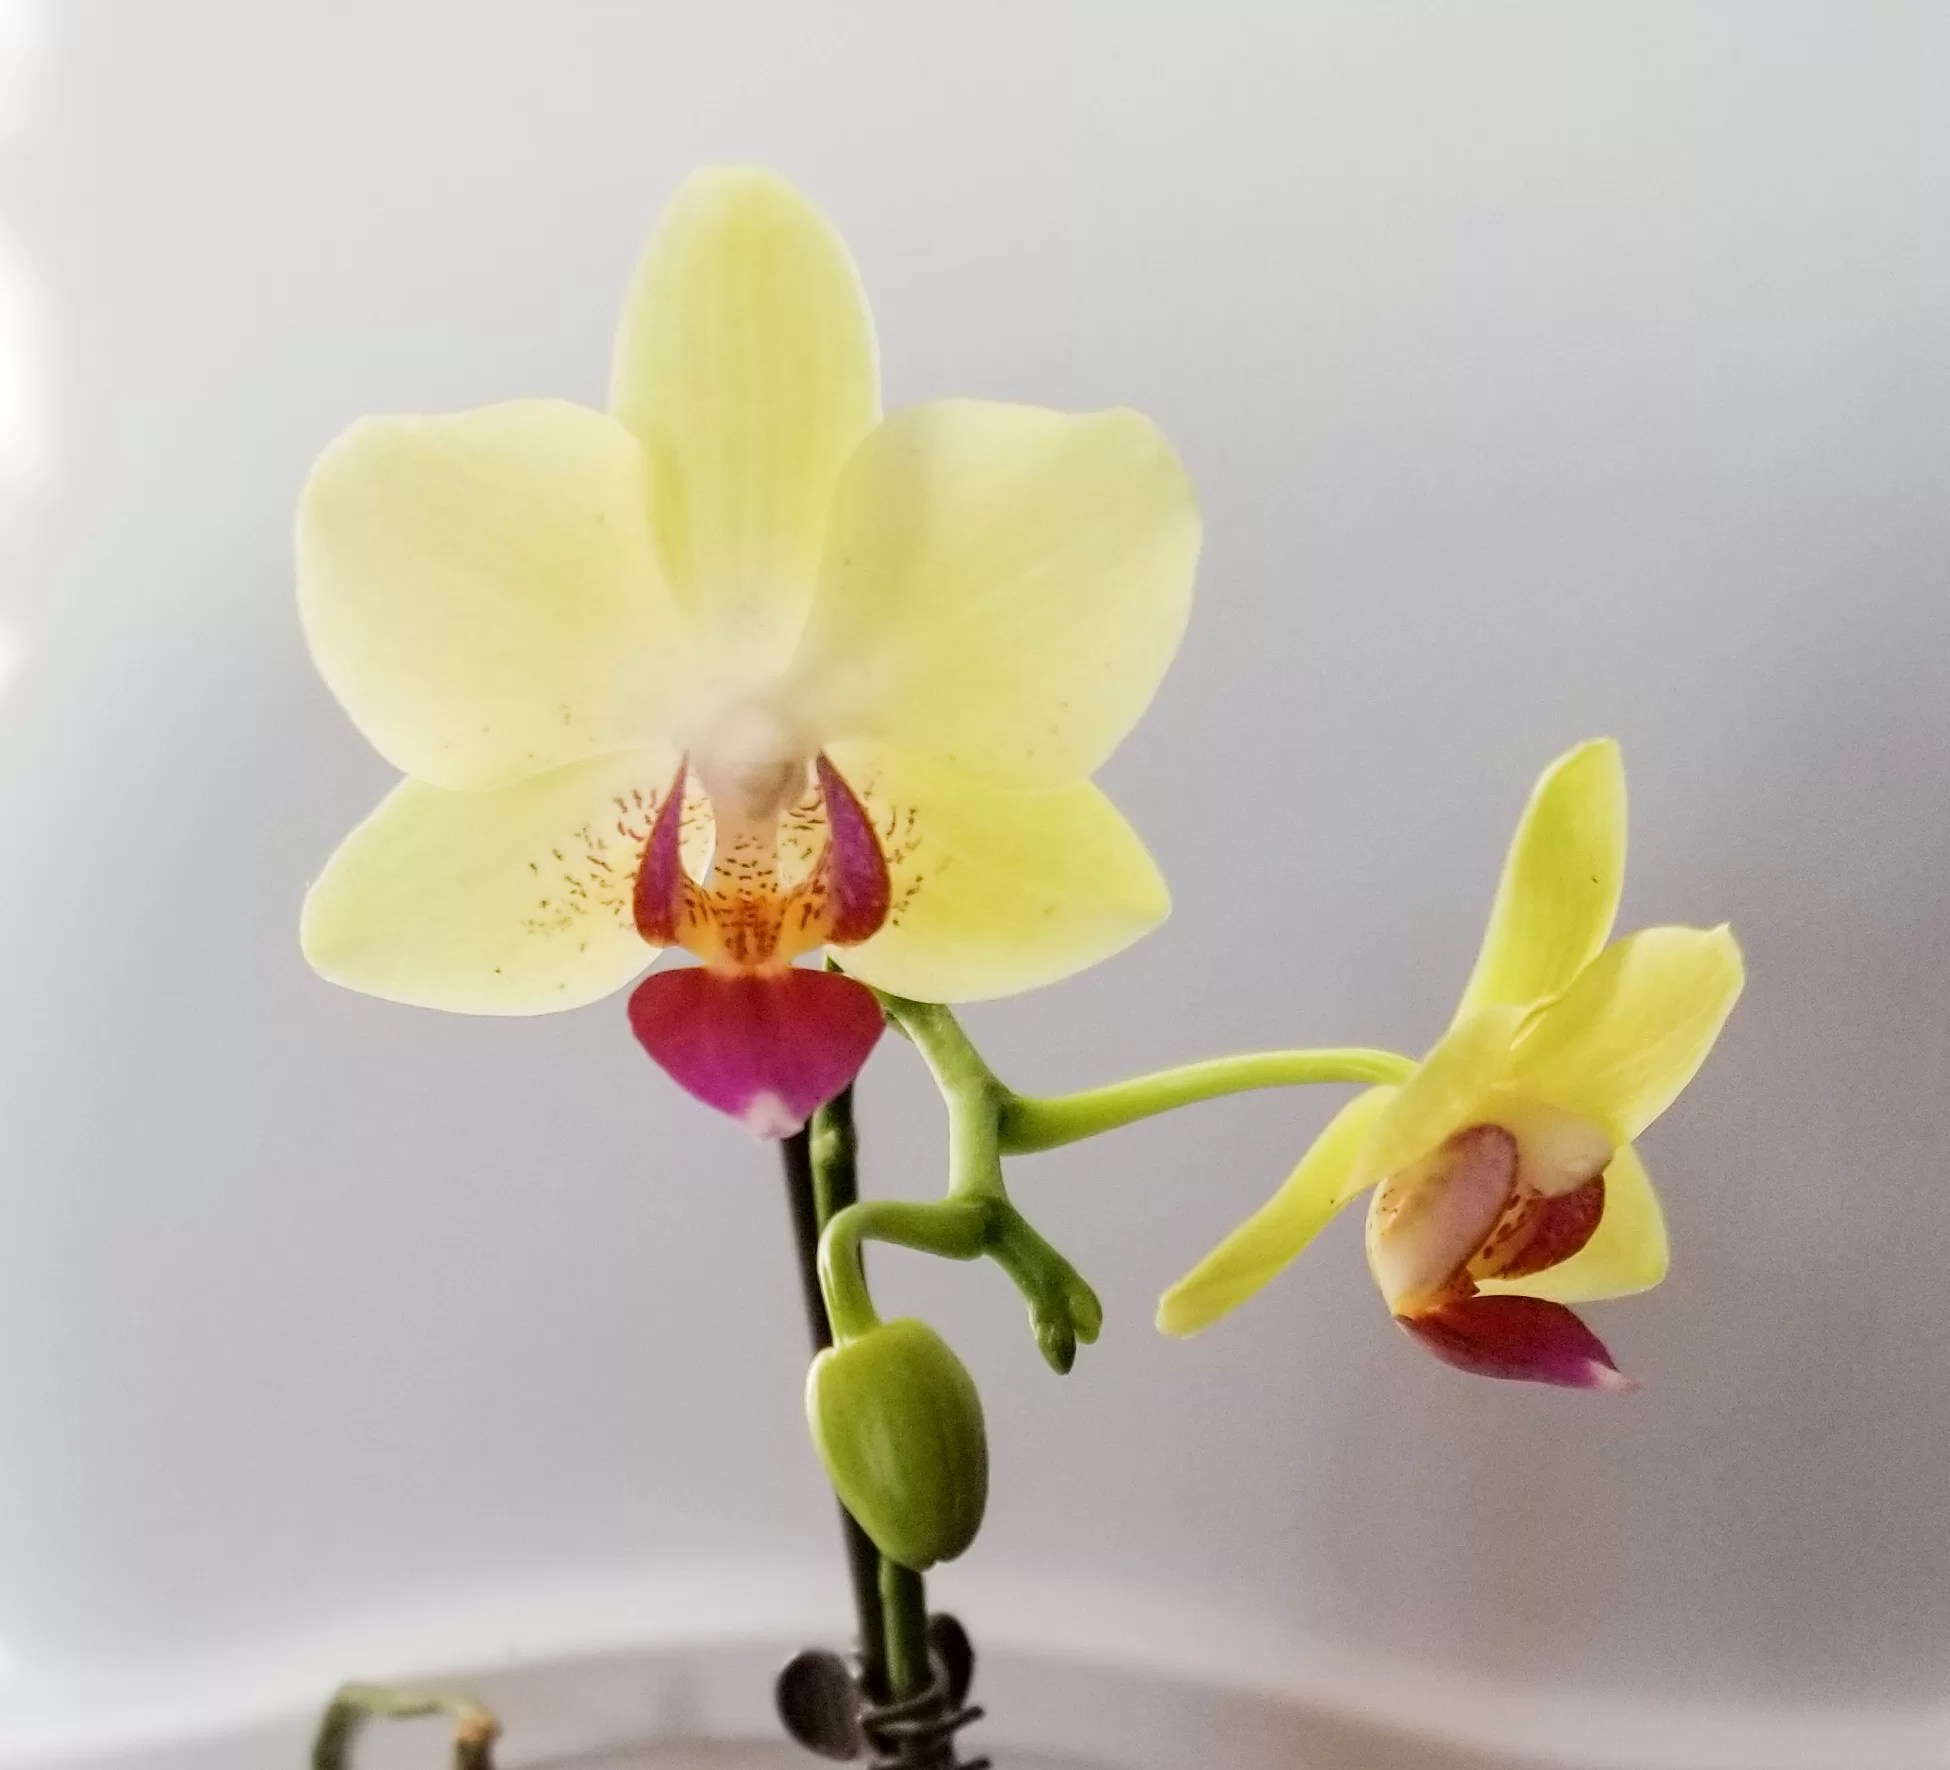 Live Plant Dwarf Orchid Flowering Mini Phalaenopsis Orchid in 3 Net Pot